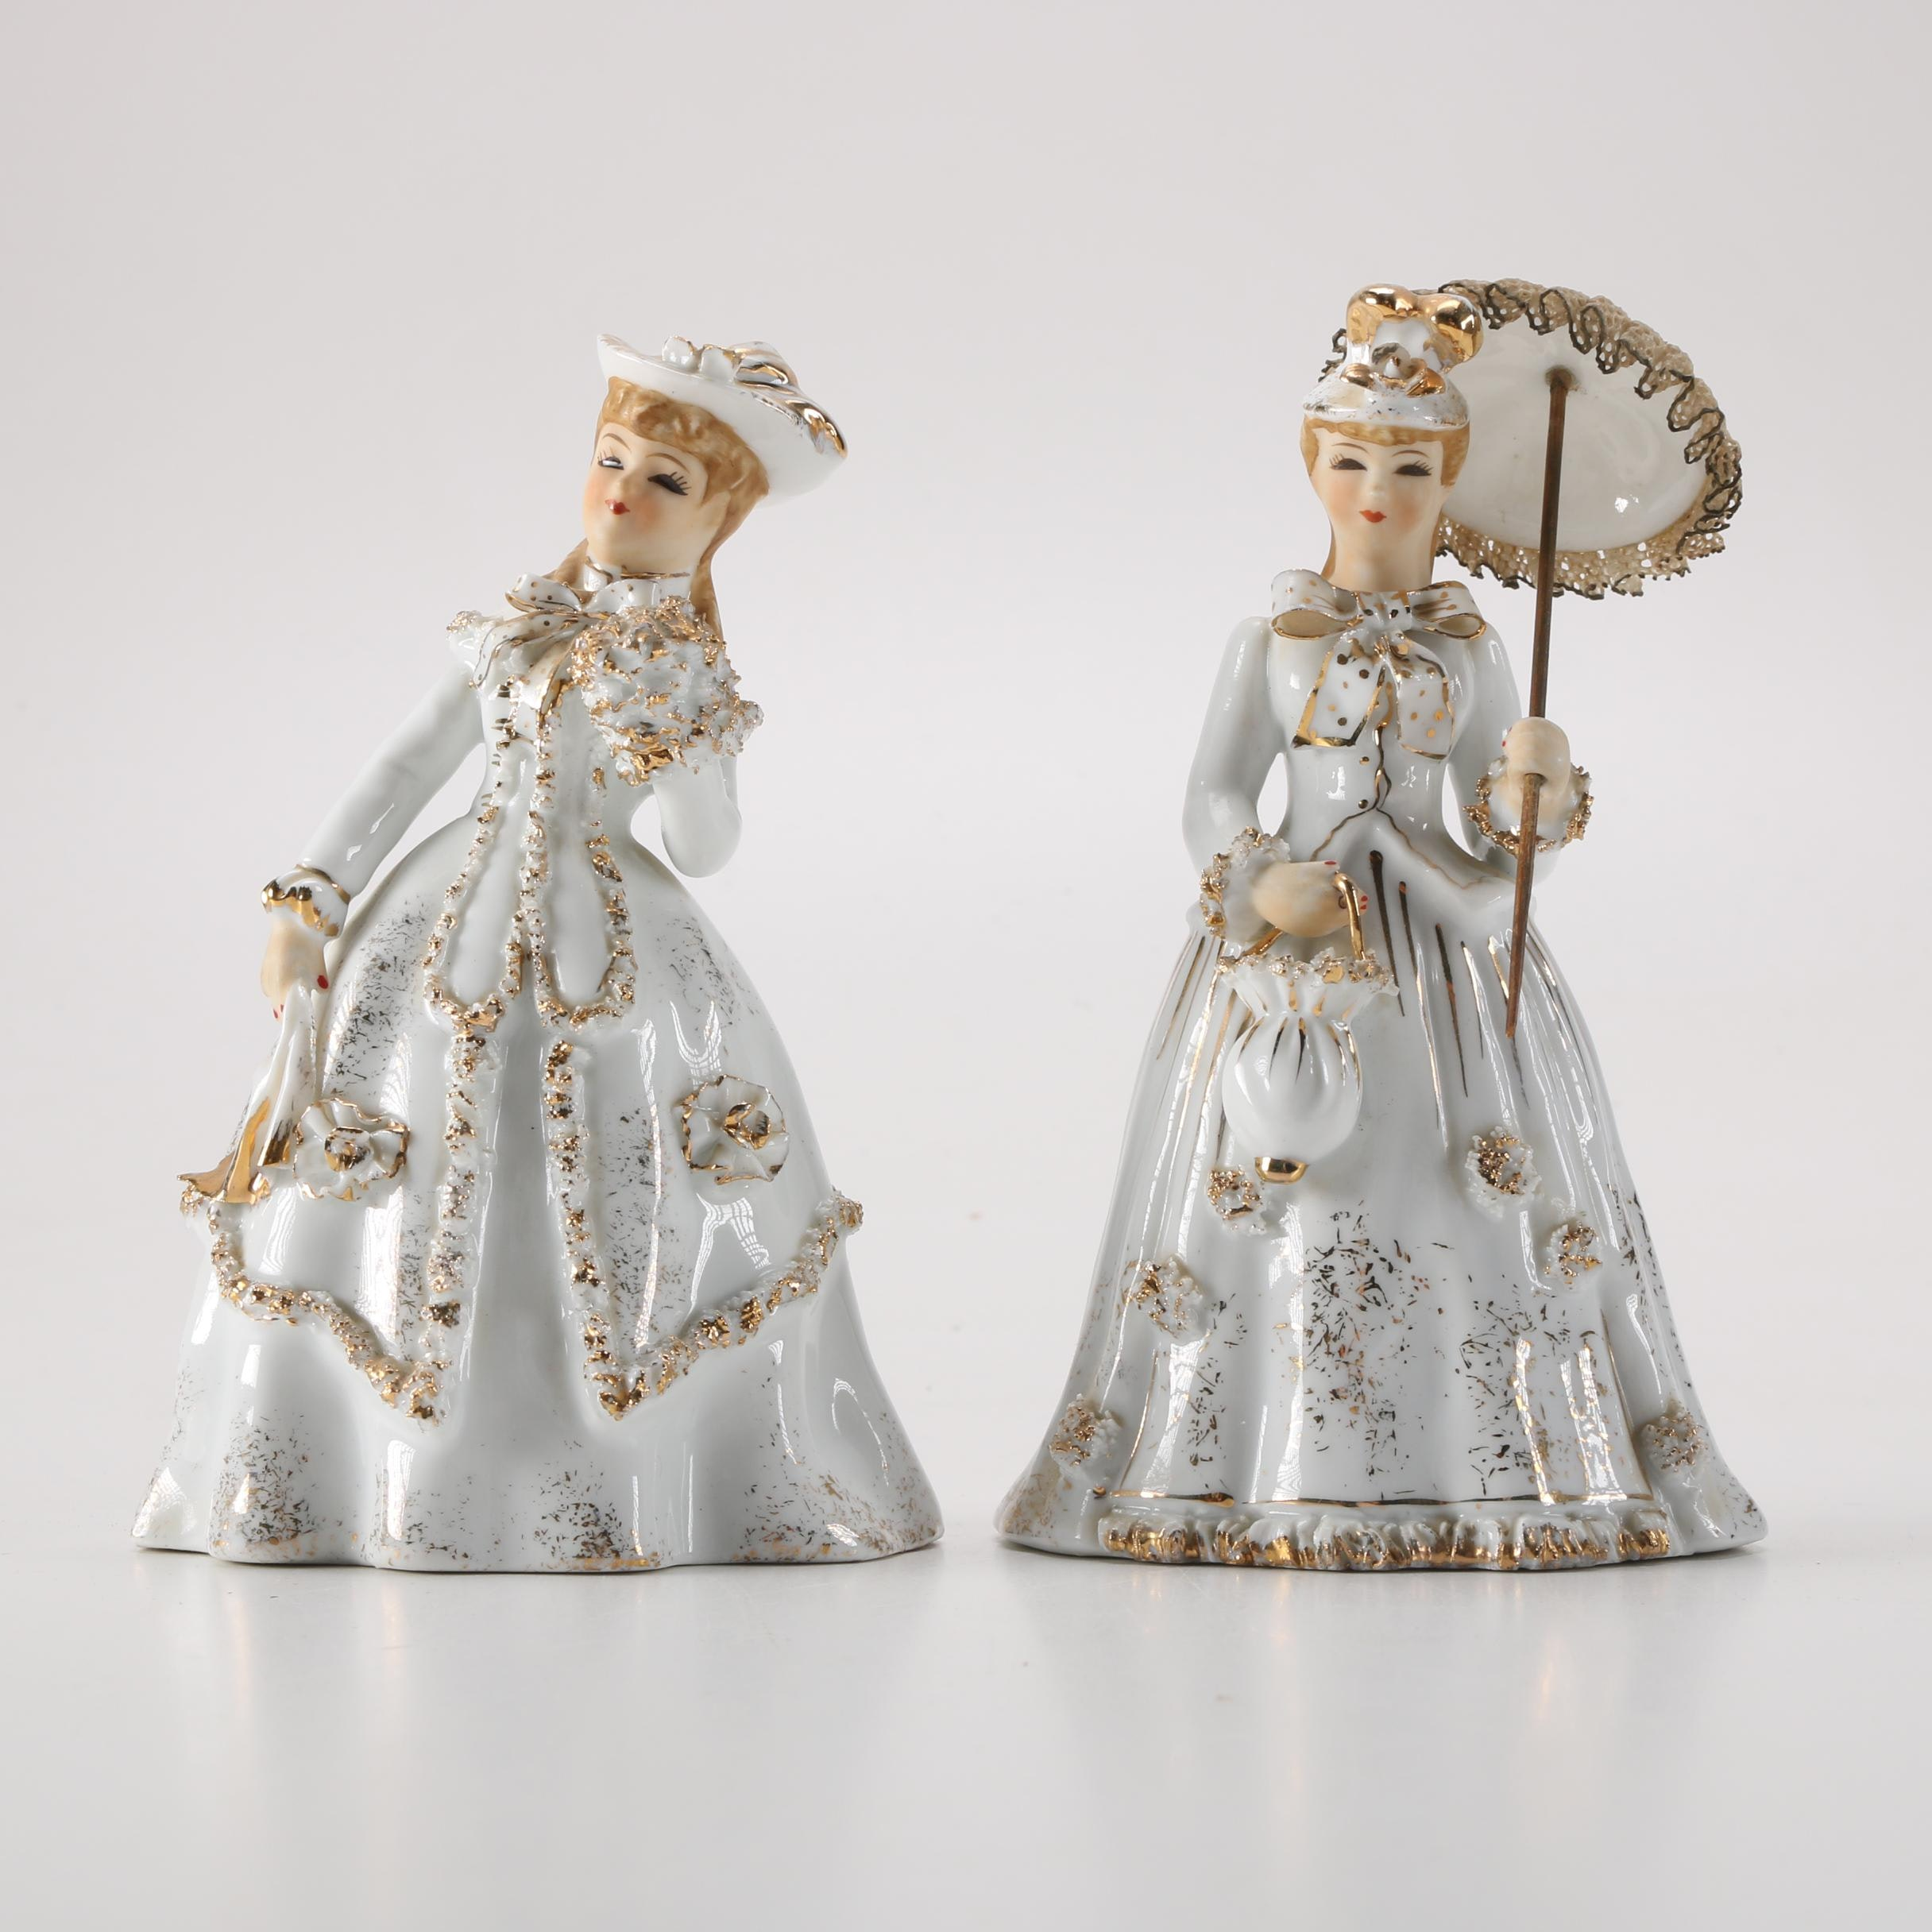 Pair of Lefton China Hand-Painted Figurines